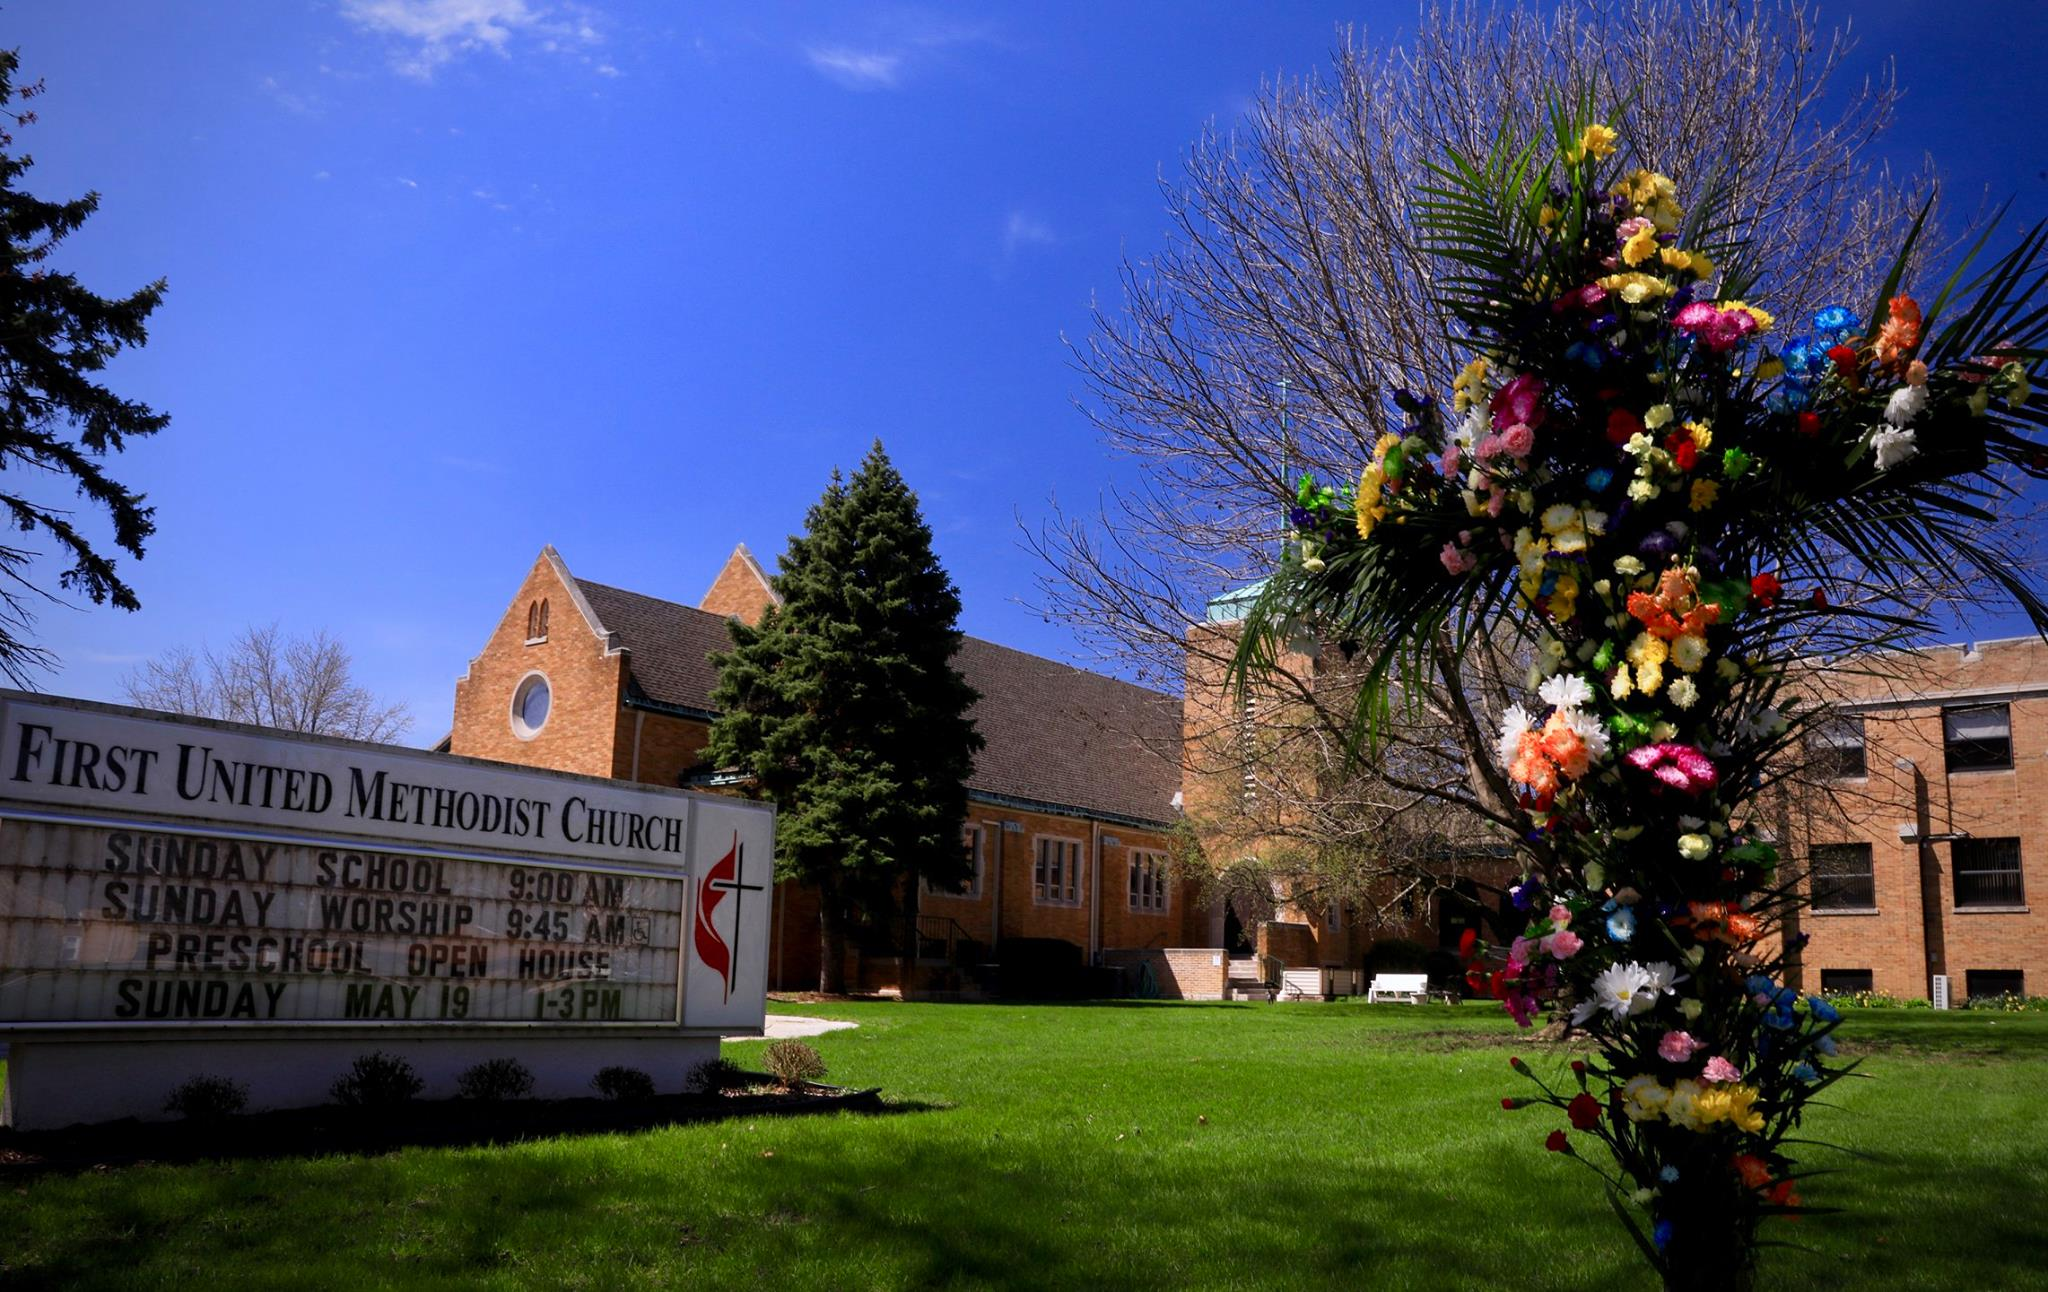 FUMC at Easter